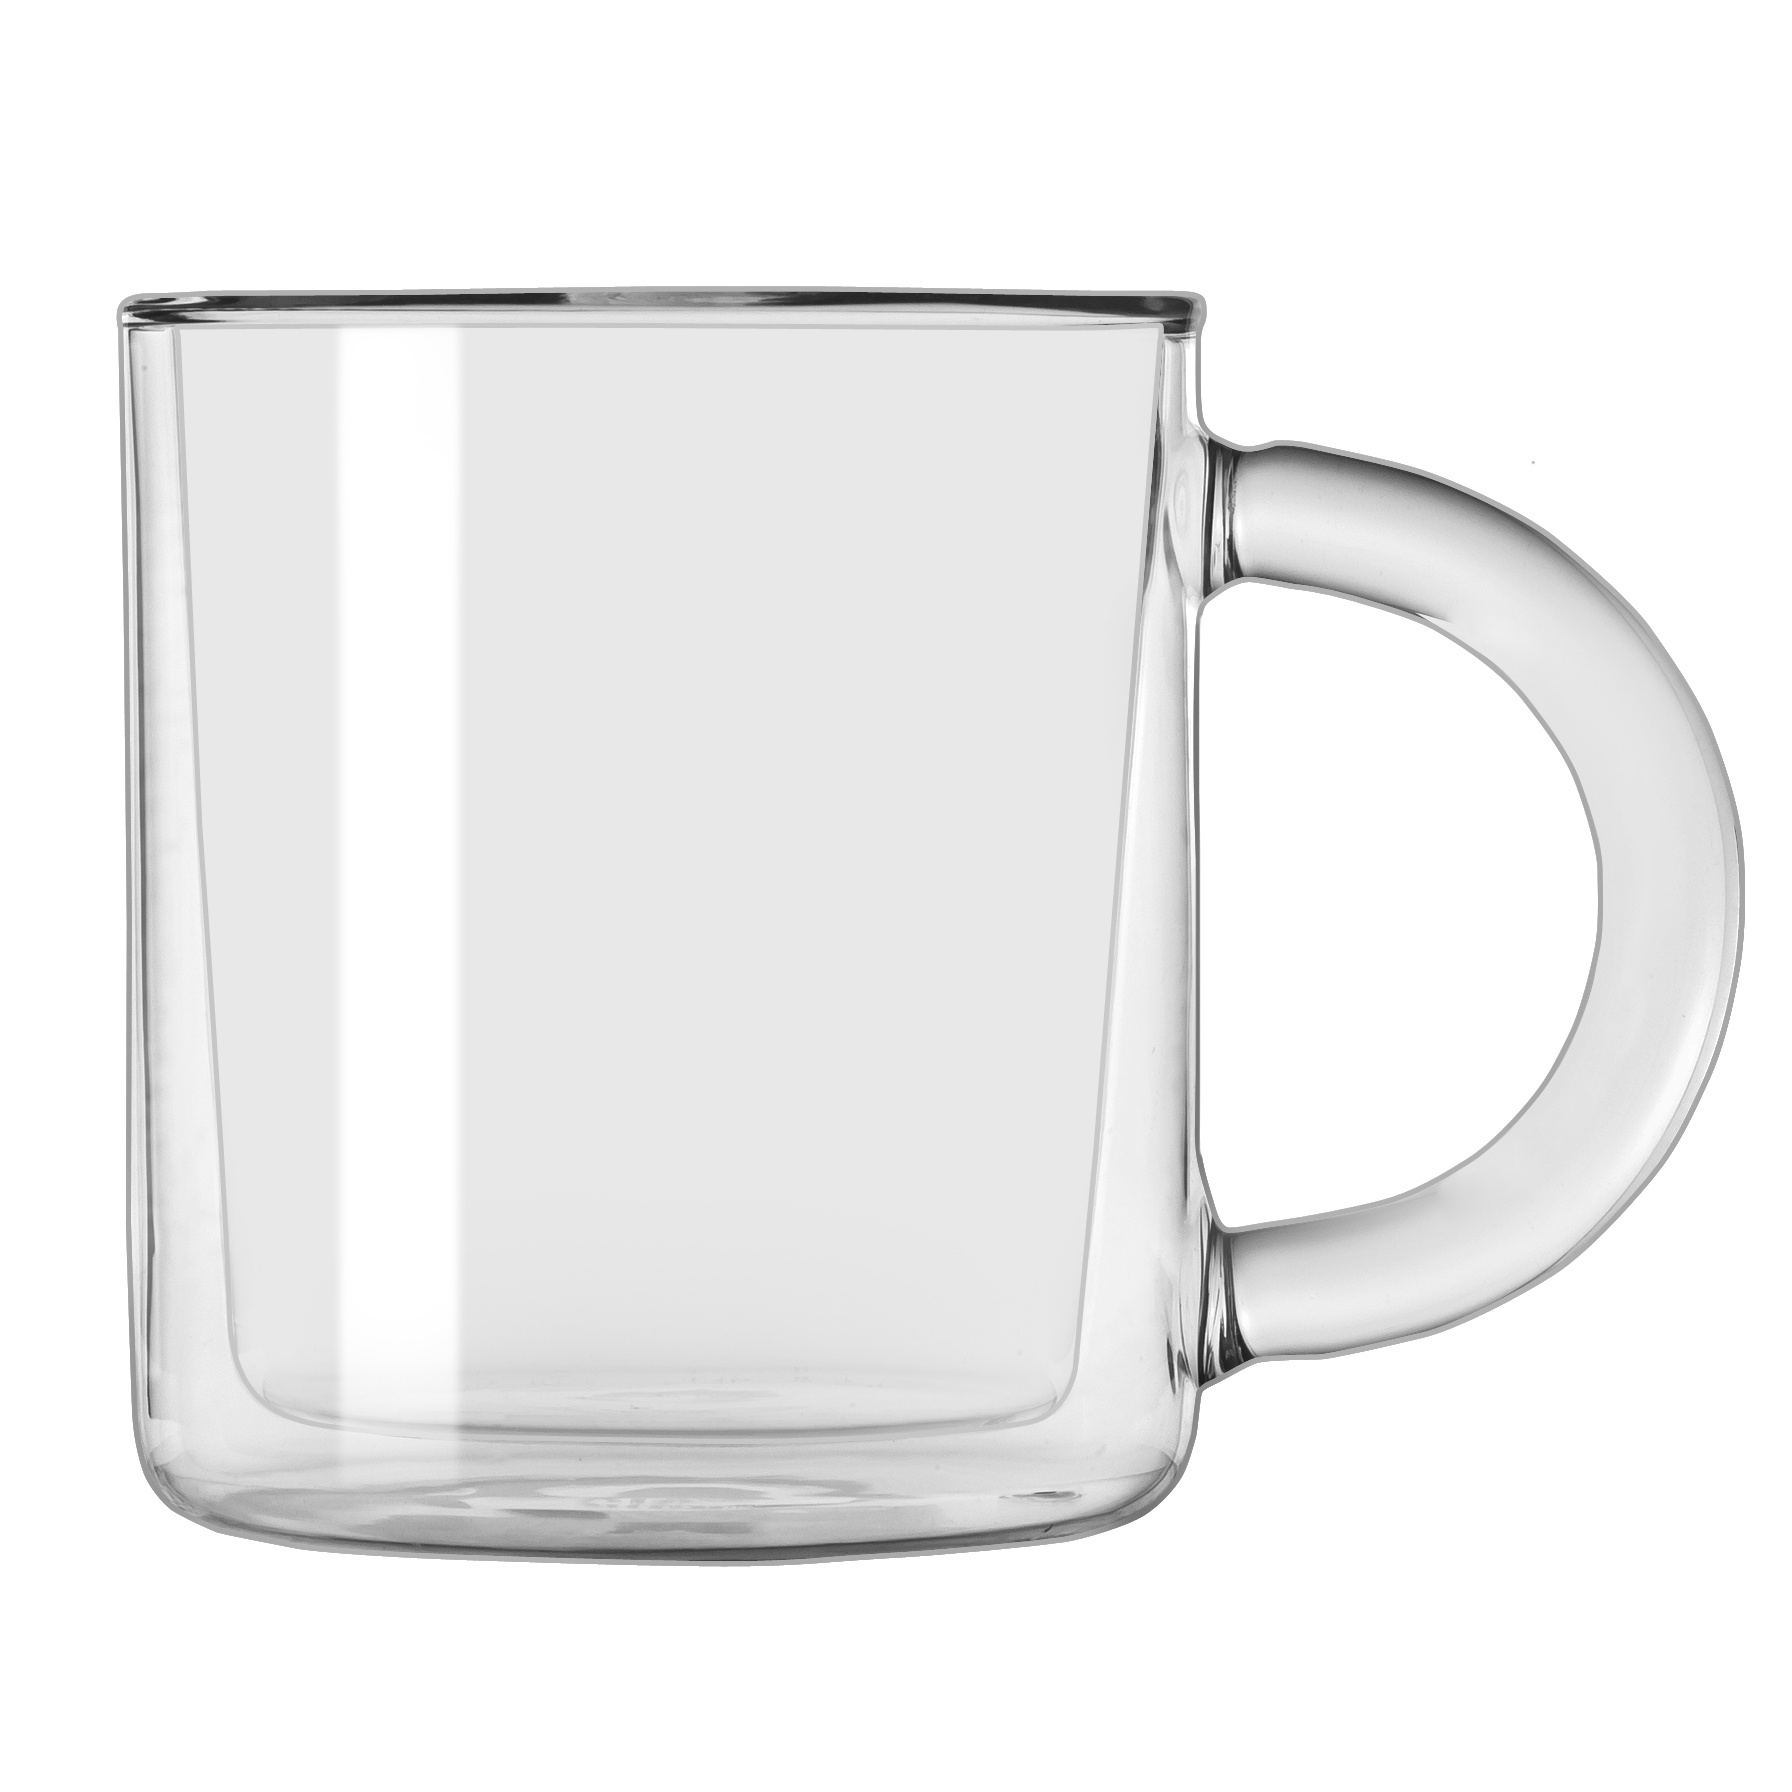 Libbey Glass VS71500 mug, glass, coffee